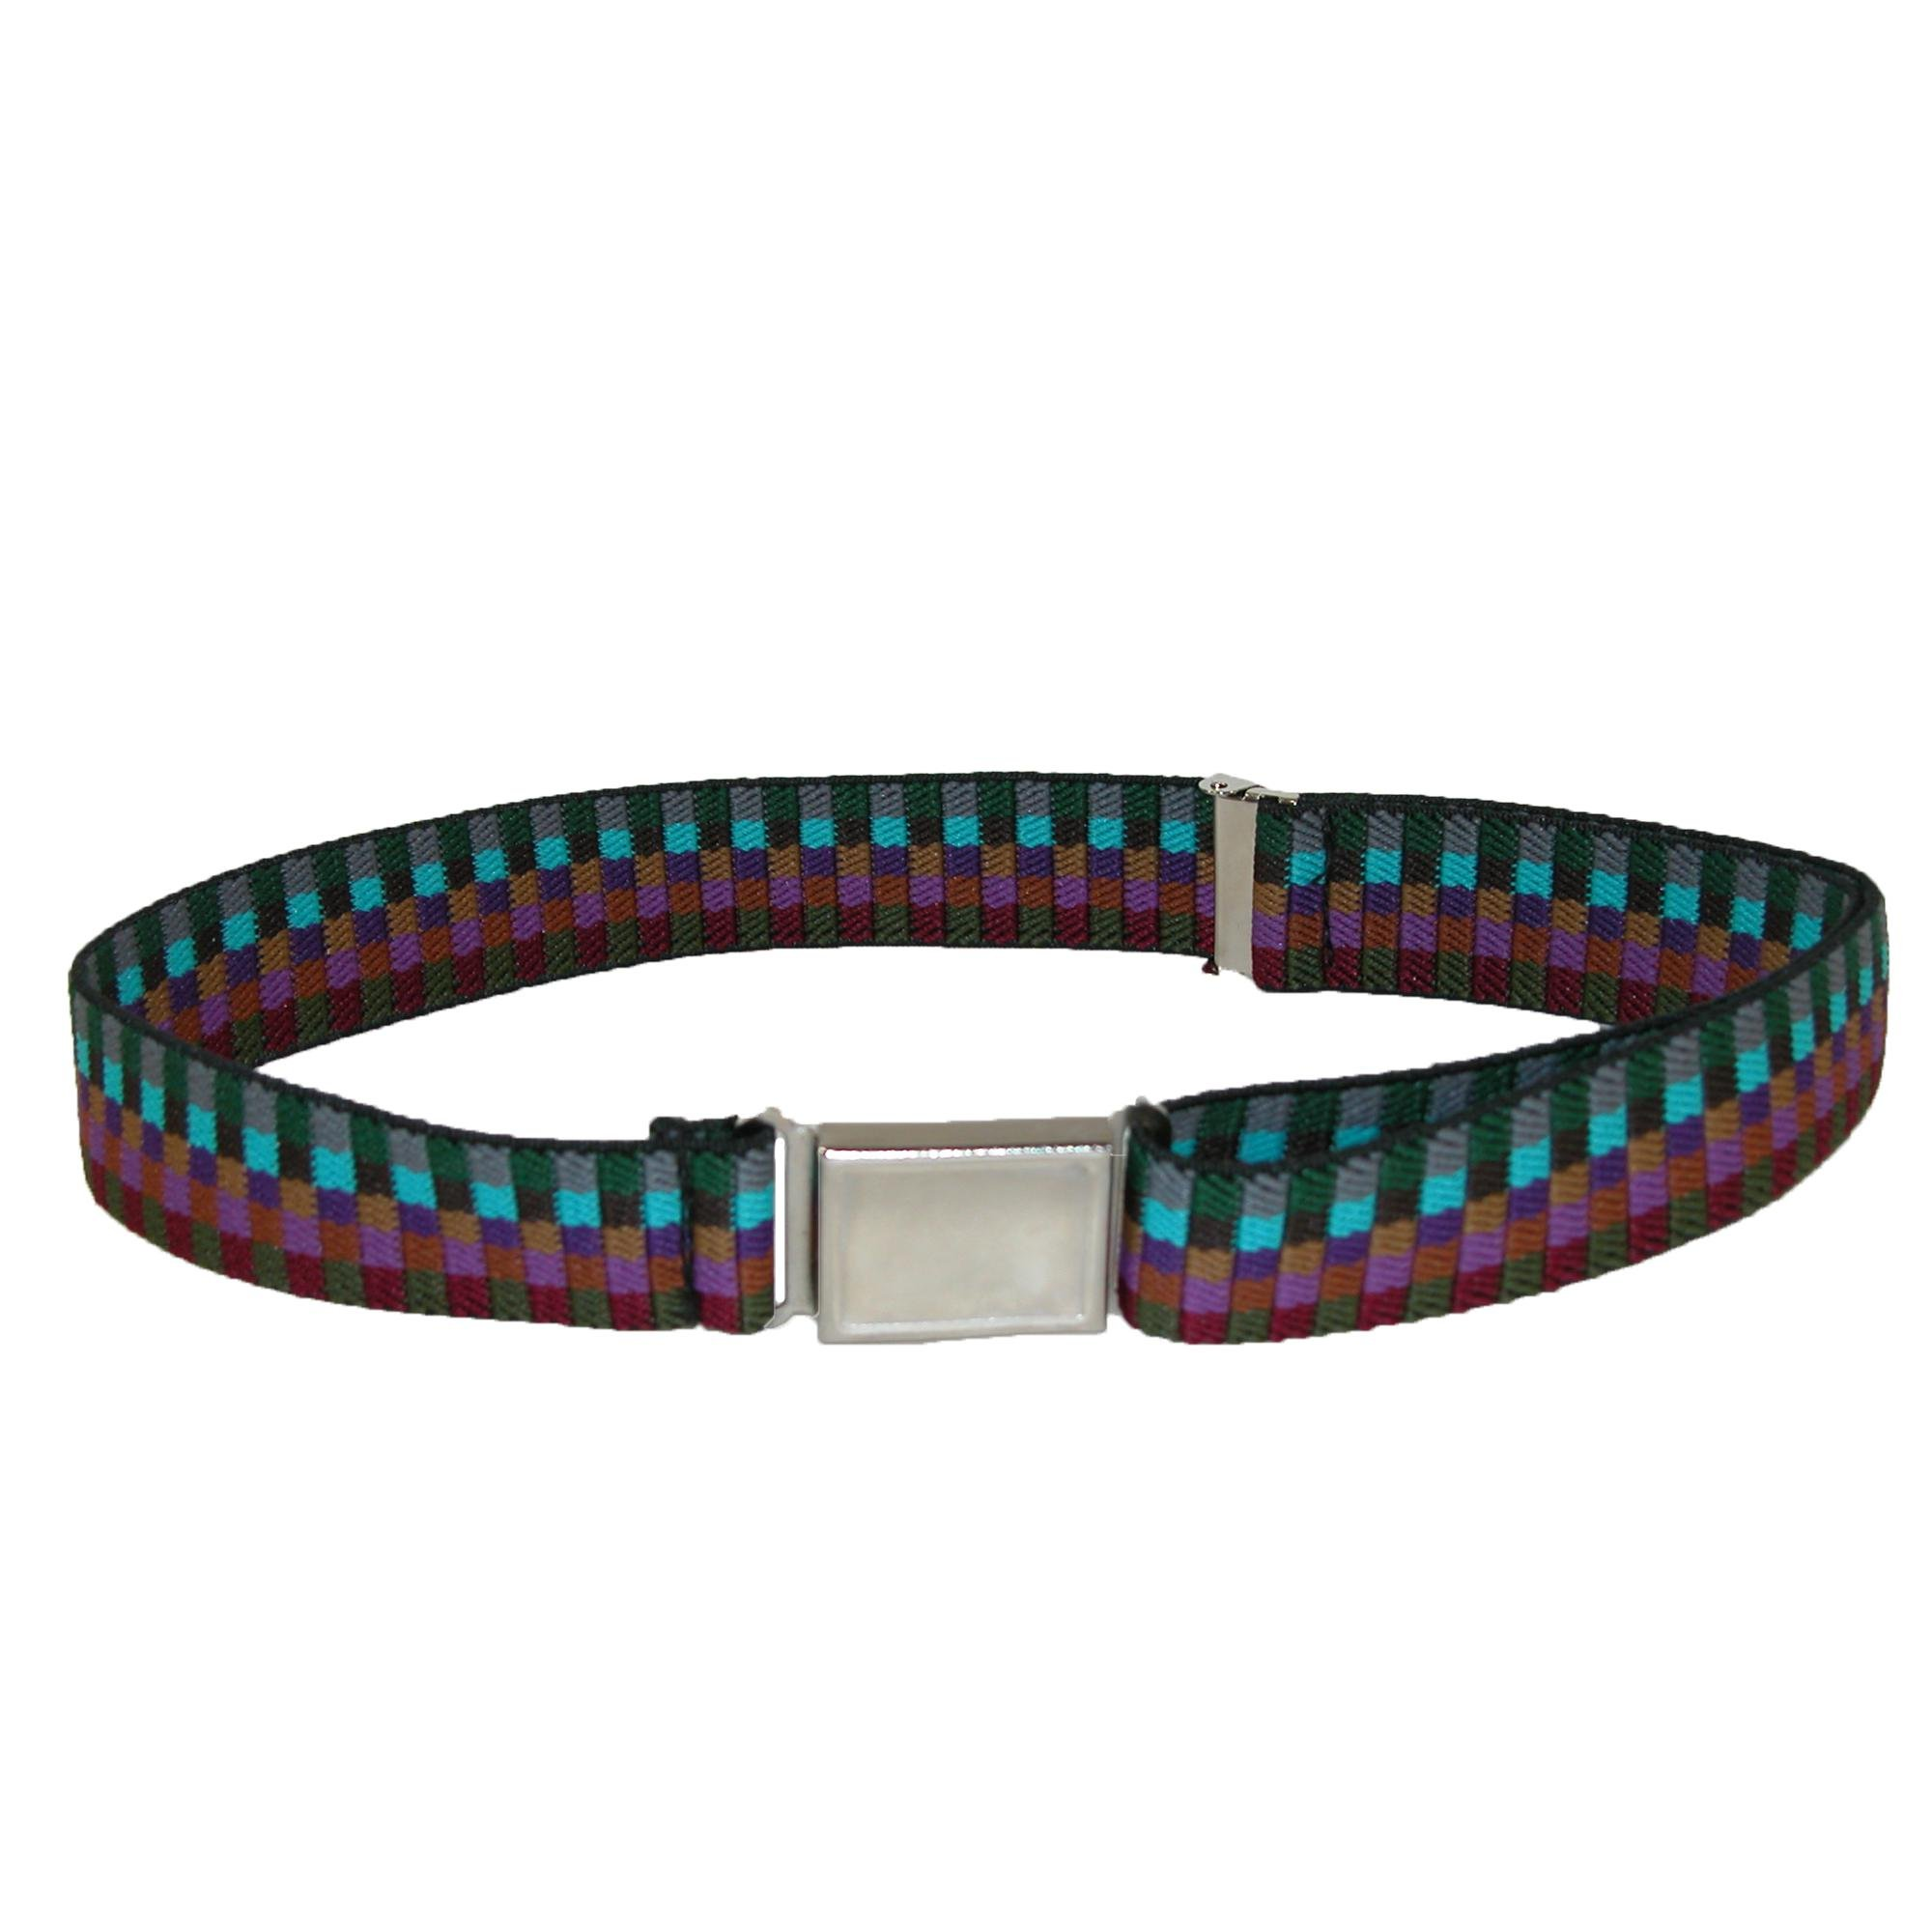 CTM Kids' Elastic Multi Tone Adjustable Belt with Magnetic Buckle, Earth Tones